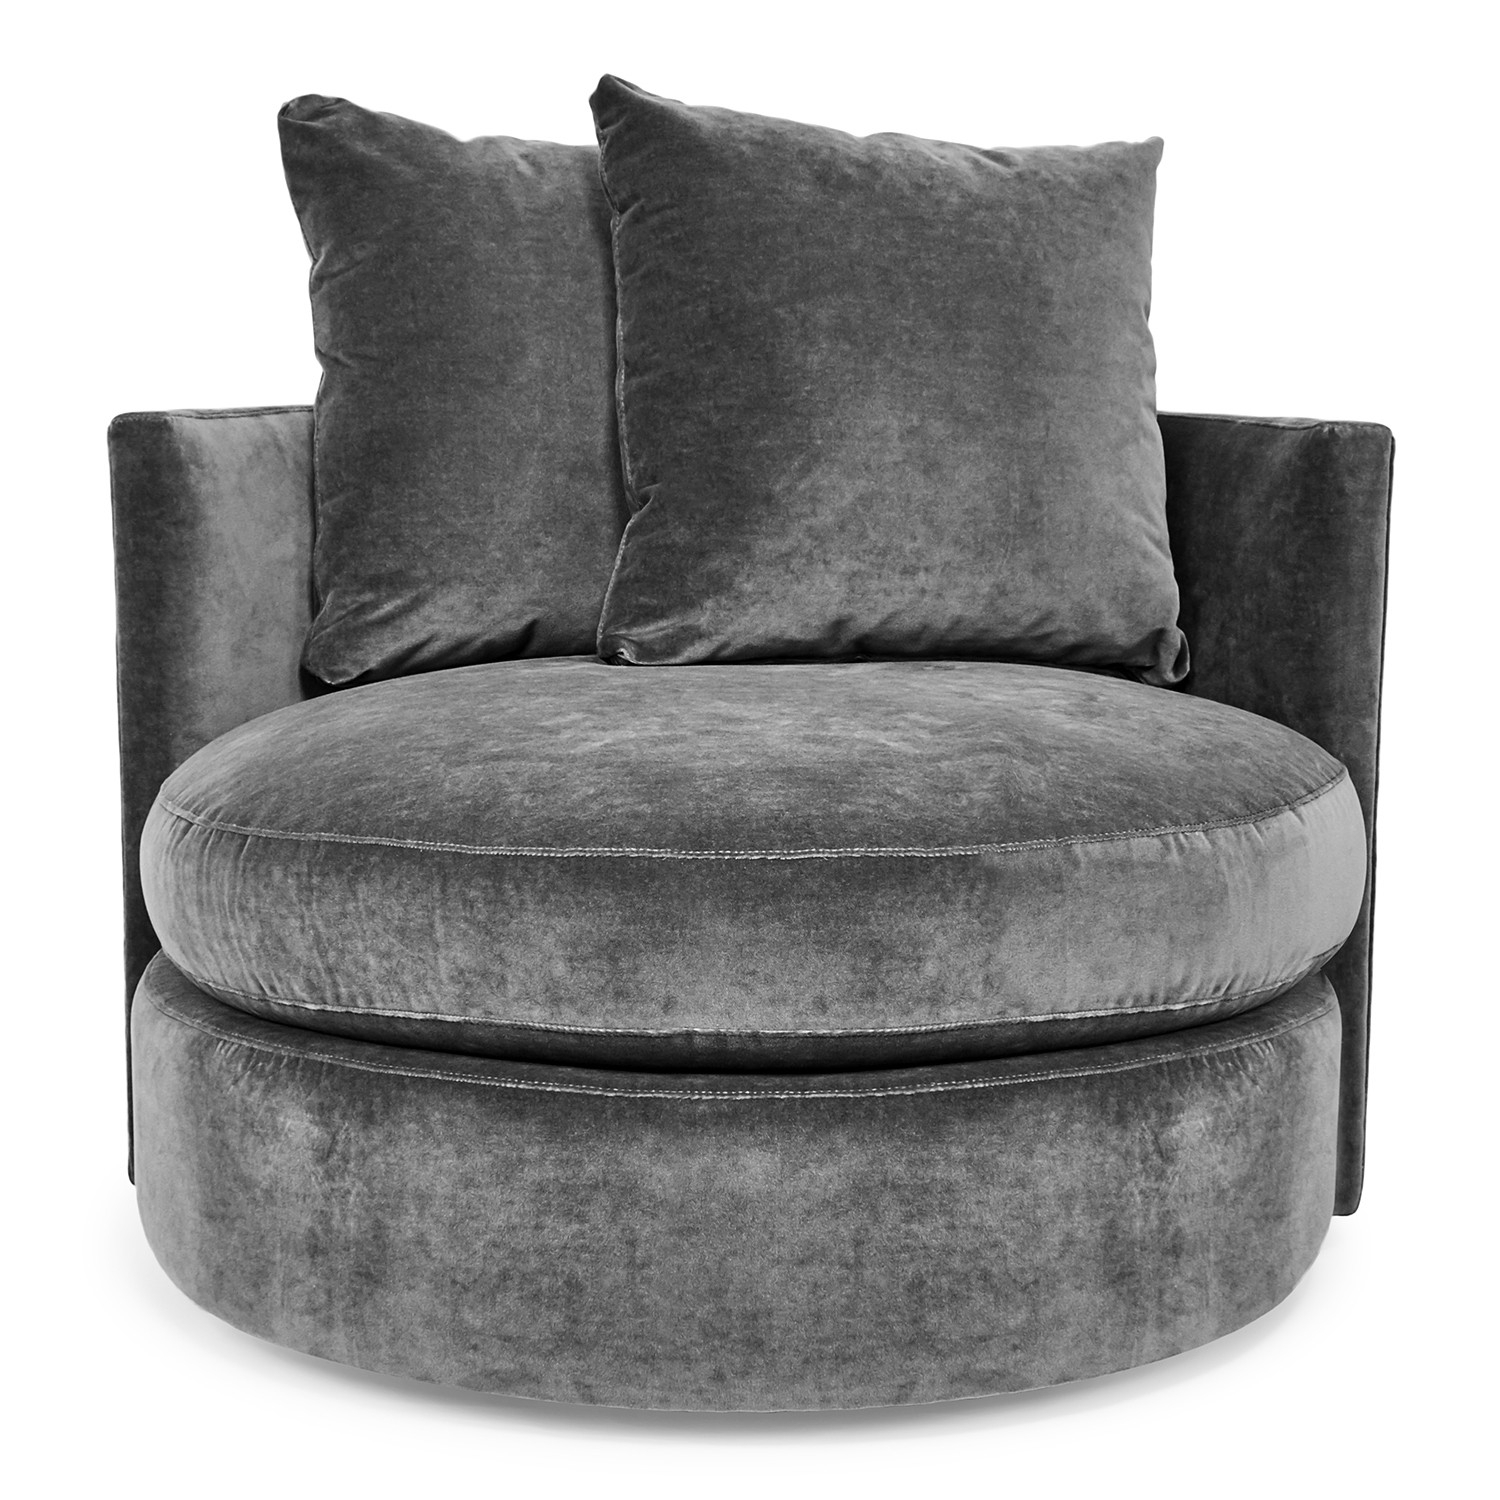 Swivel Accent Chairs At Abc Home & Carpet Within Umber Grey Swivel Accent Chairs (View 15 of 20)